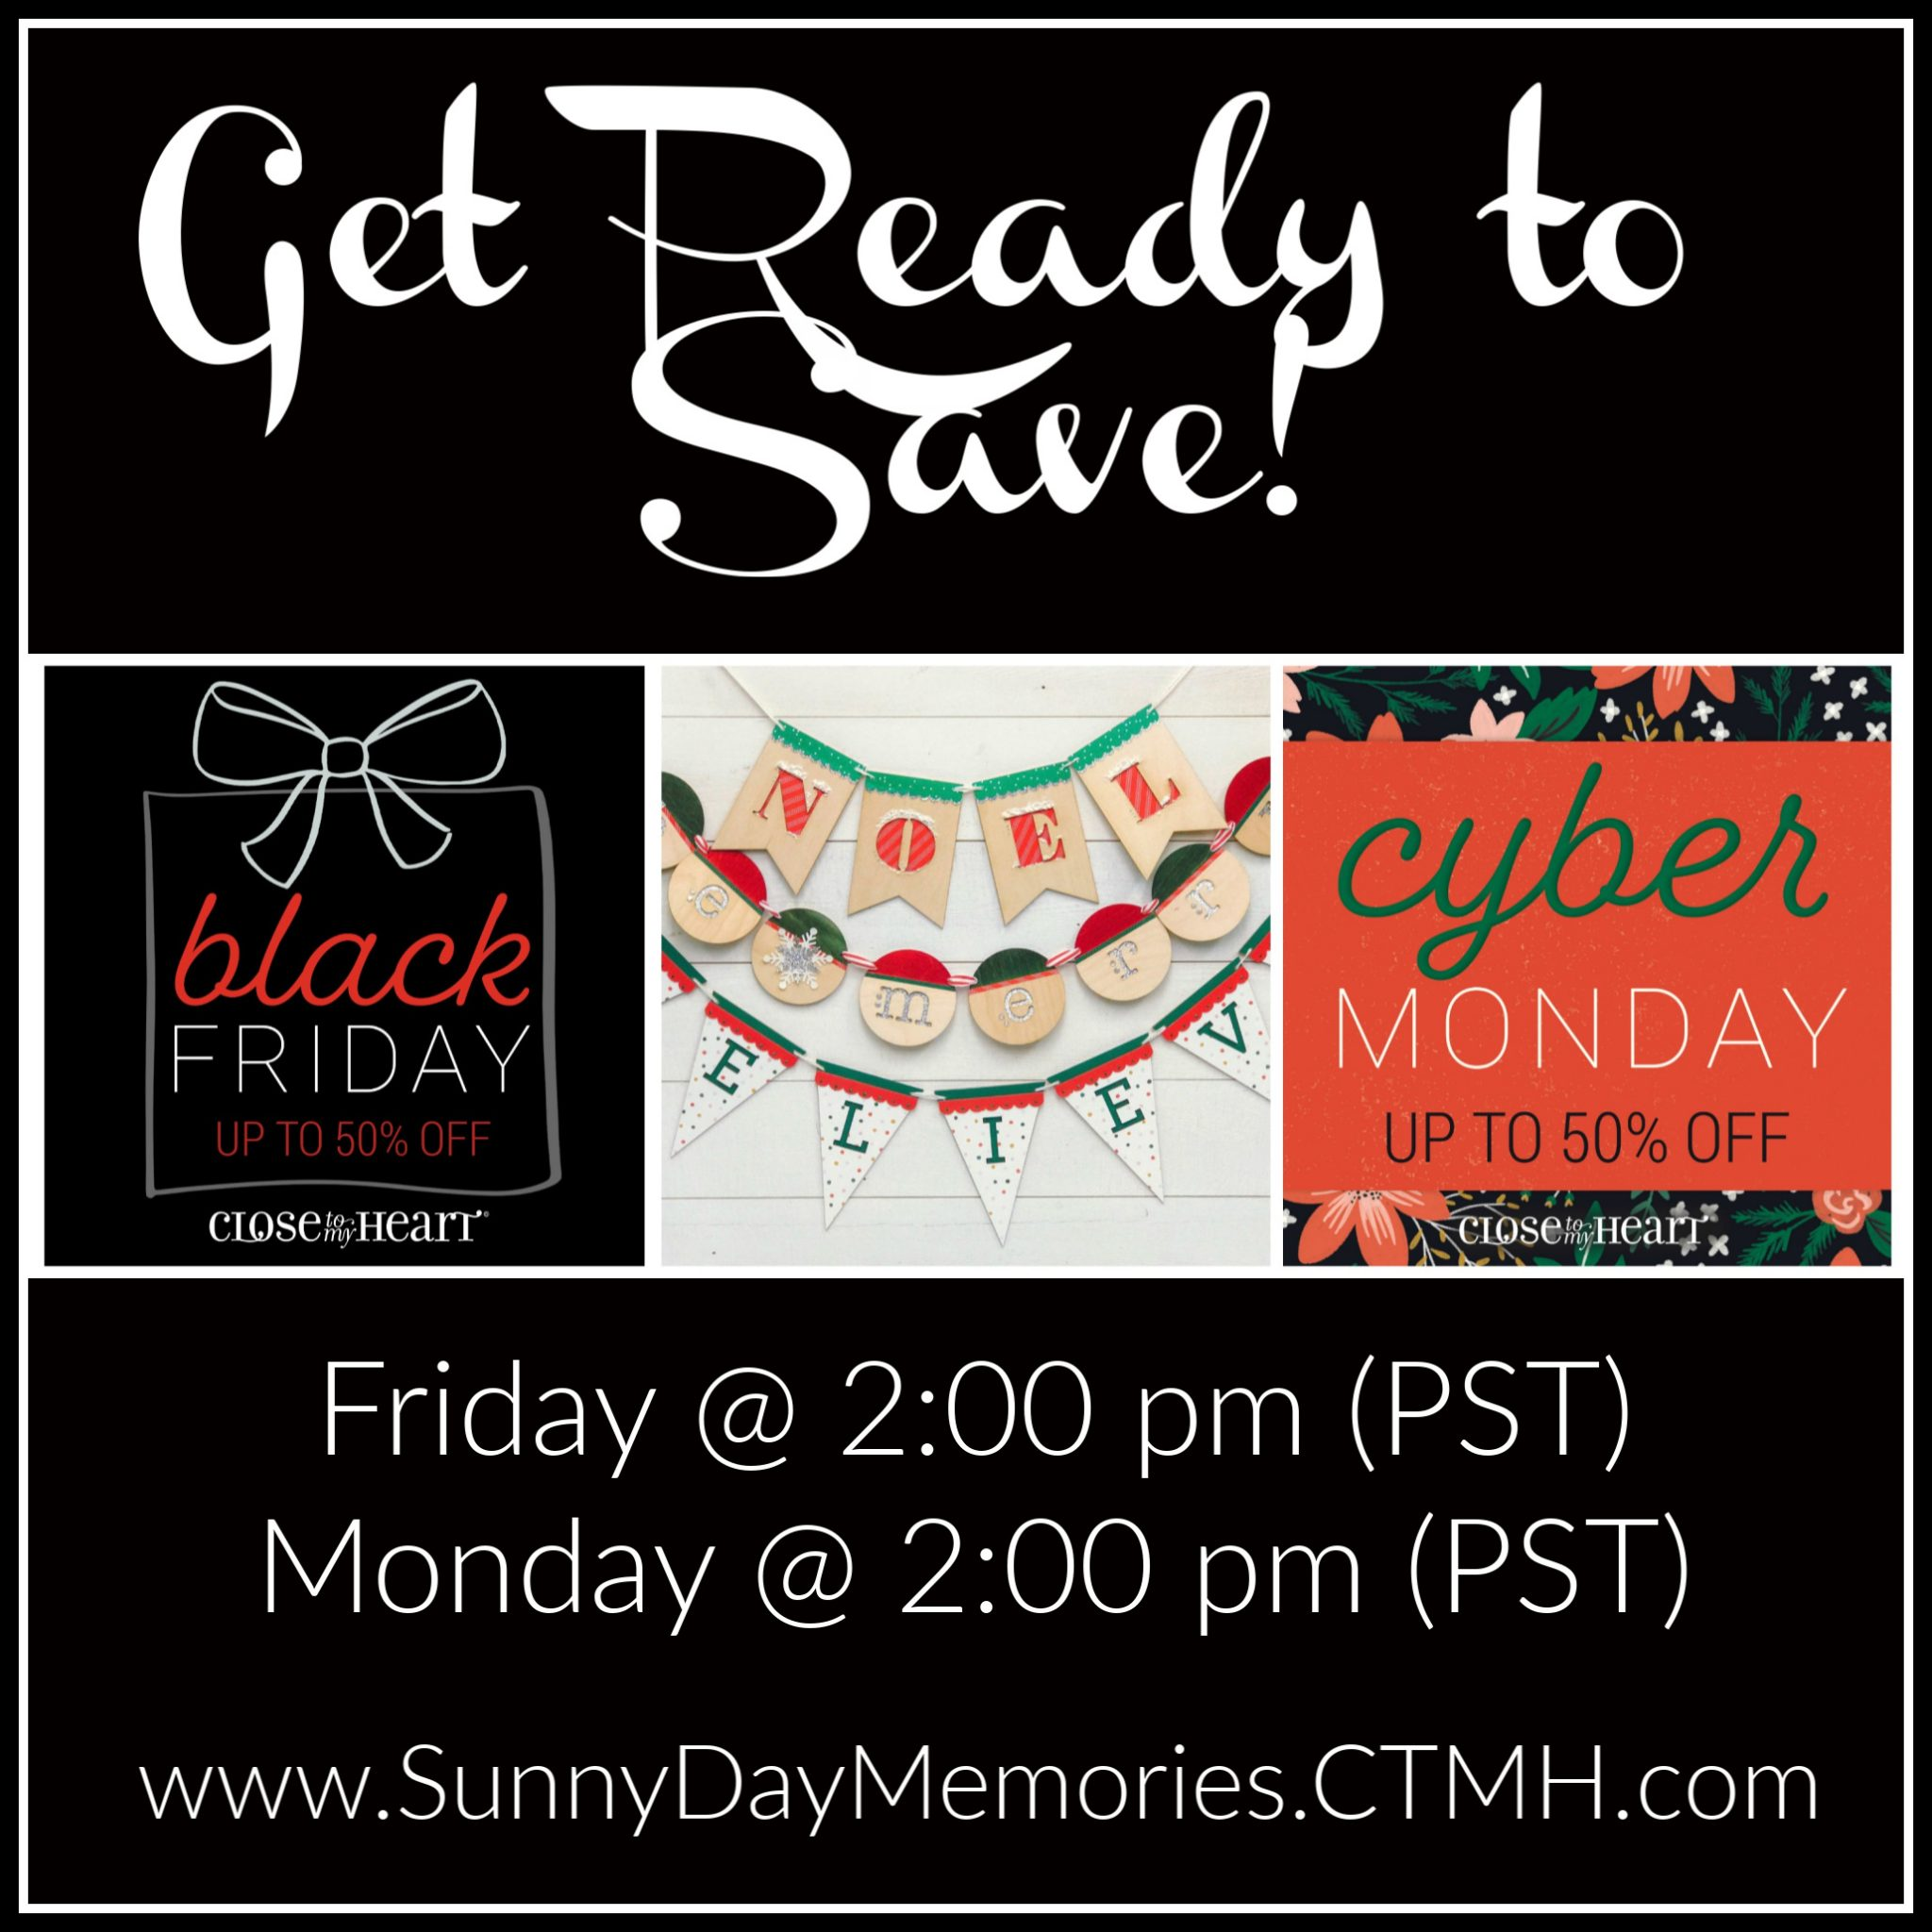 CTMH Holiday 2019 Sales